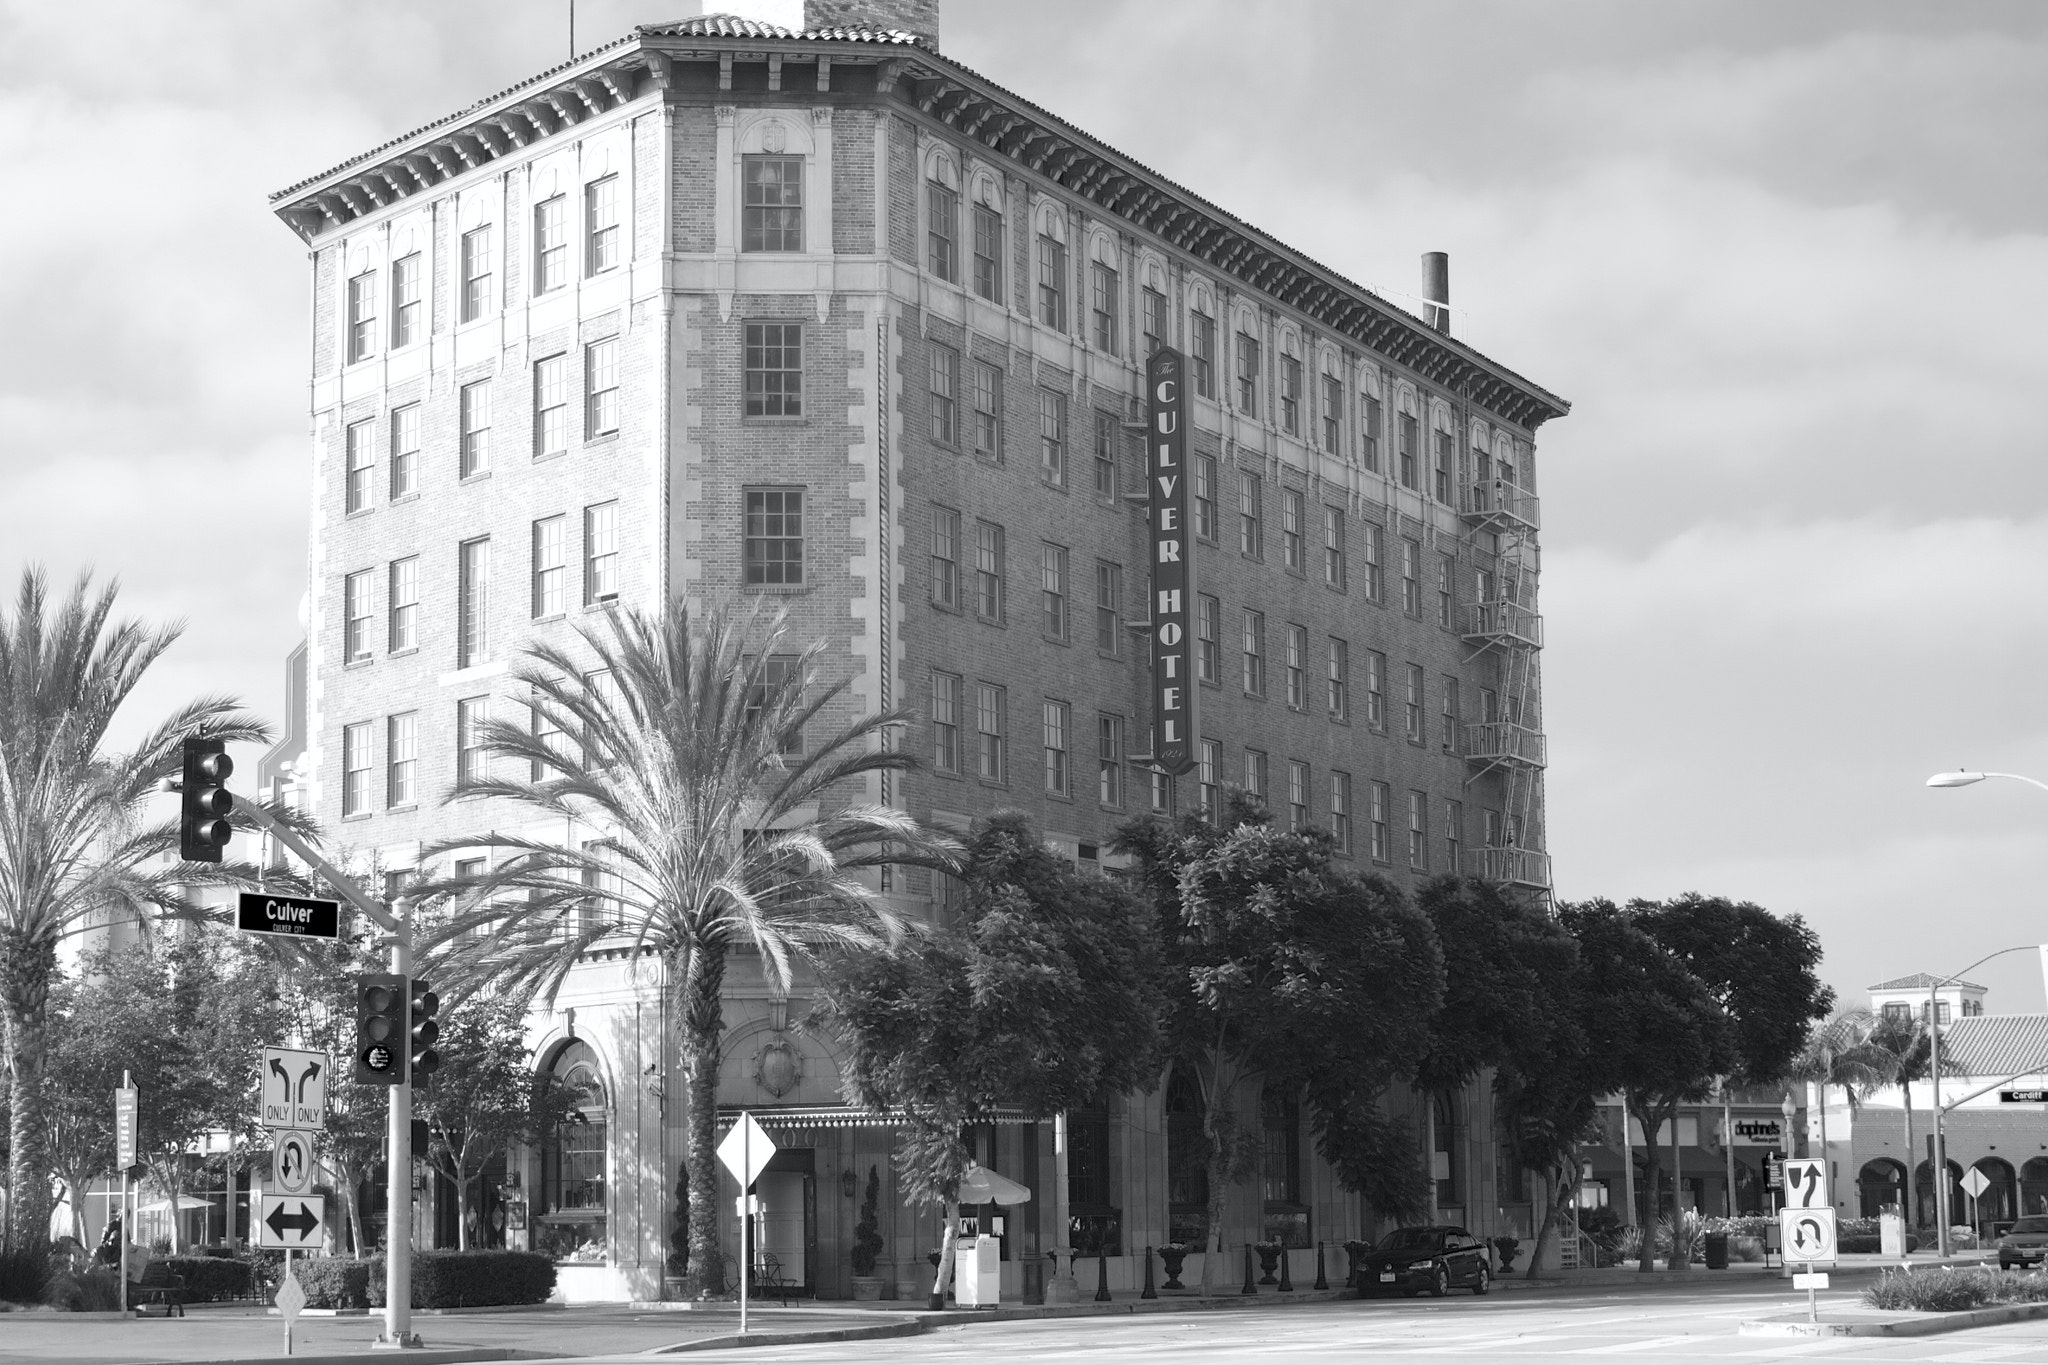 The Culver Hotel in Culver City, a distinctly walkable neighborhood